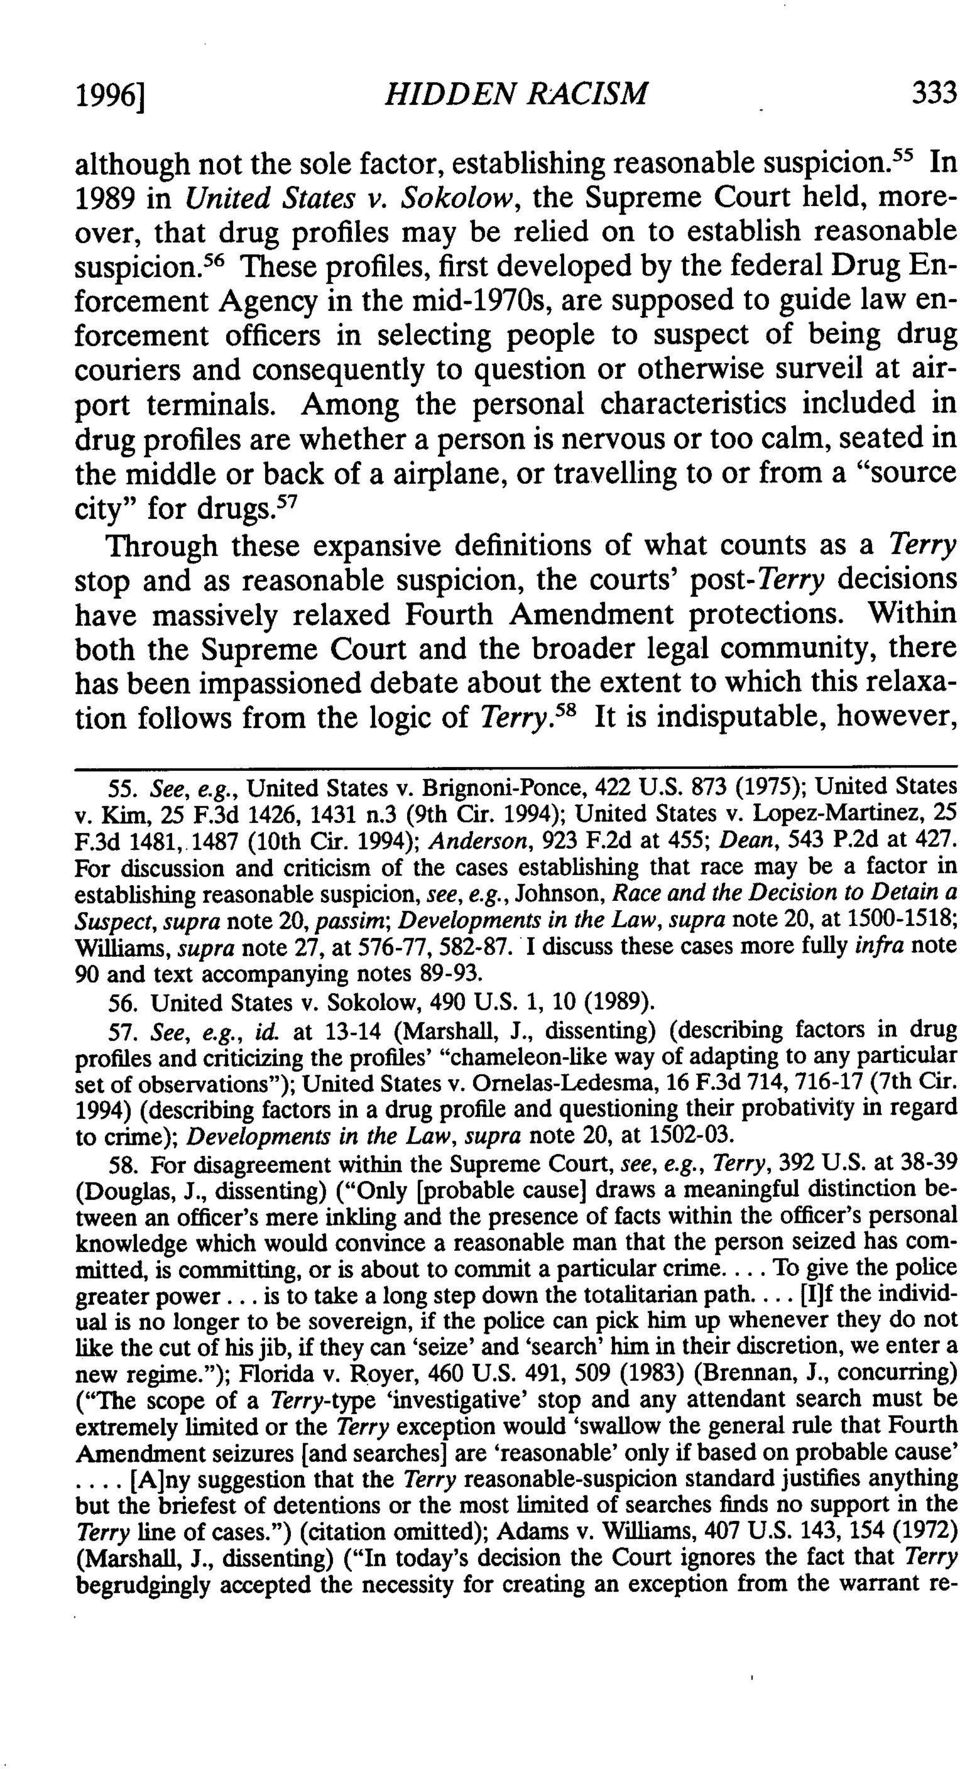 5 6 These profiles, first developed by the federal Drug Enforcement Agency in the mid-1970s, are supposed to guide law enforcement officers in selecting people to suspect of being drug couriers and